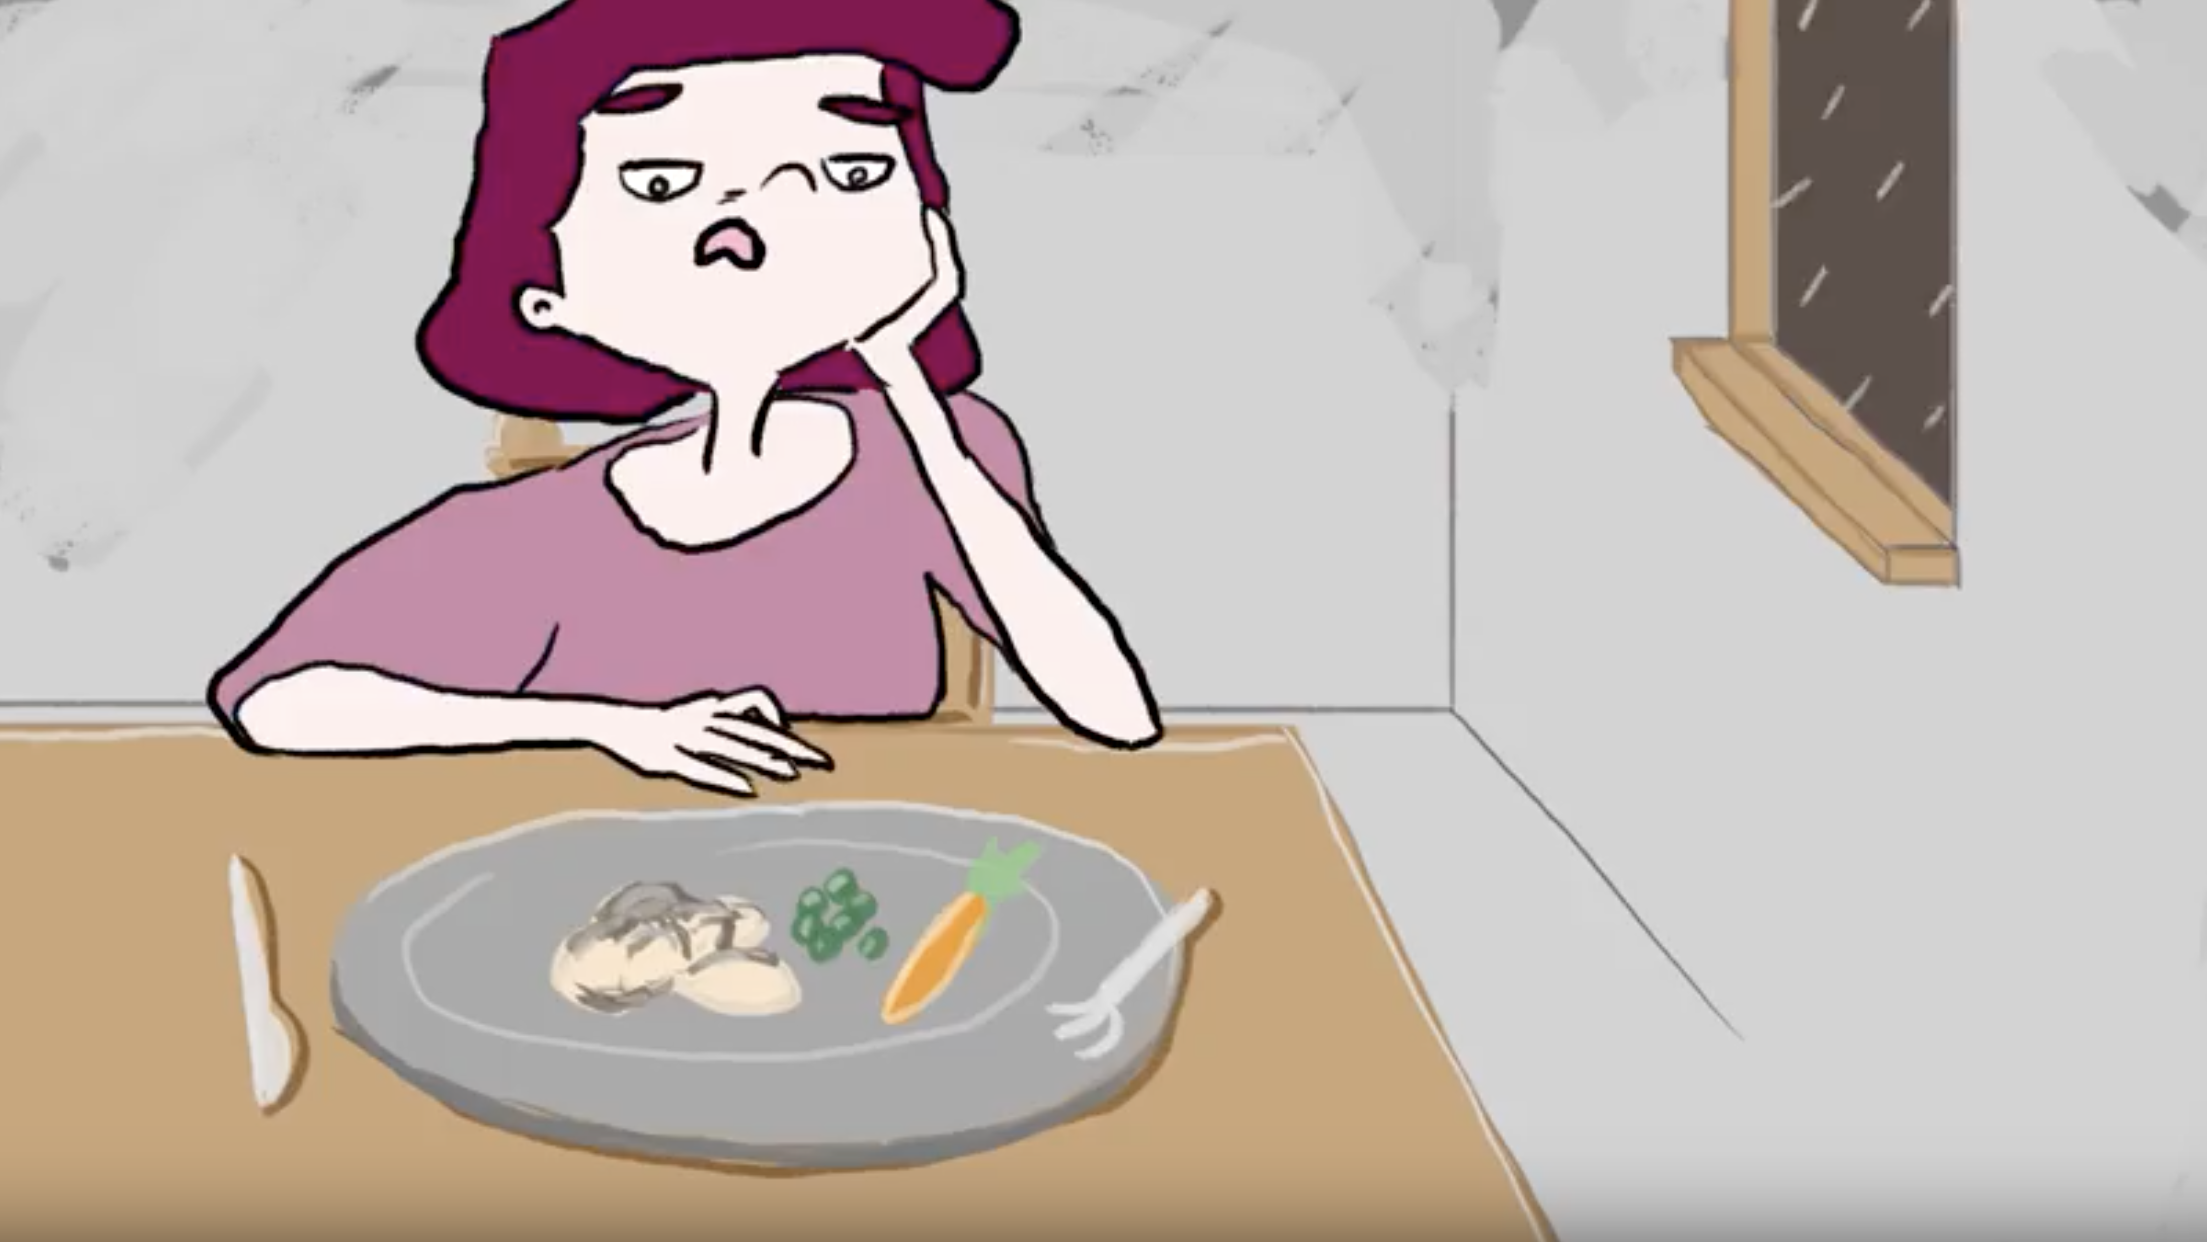 Image of cartoon drawn woman taken from animation sitting at dining table with her chin in her hands in front of plate with meat and vegetables